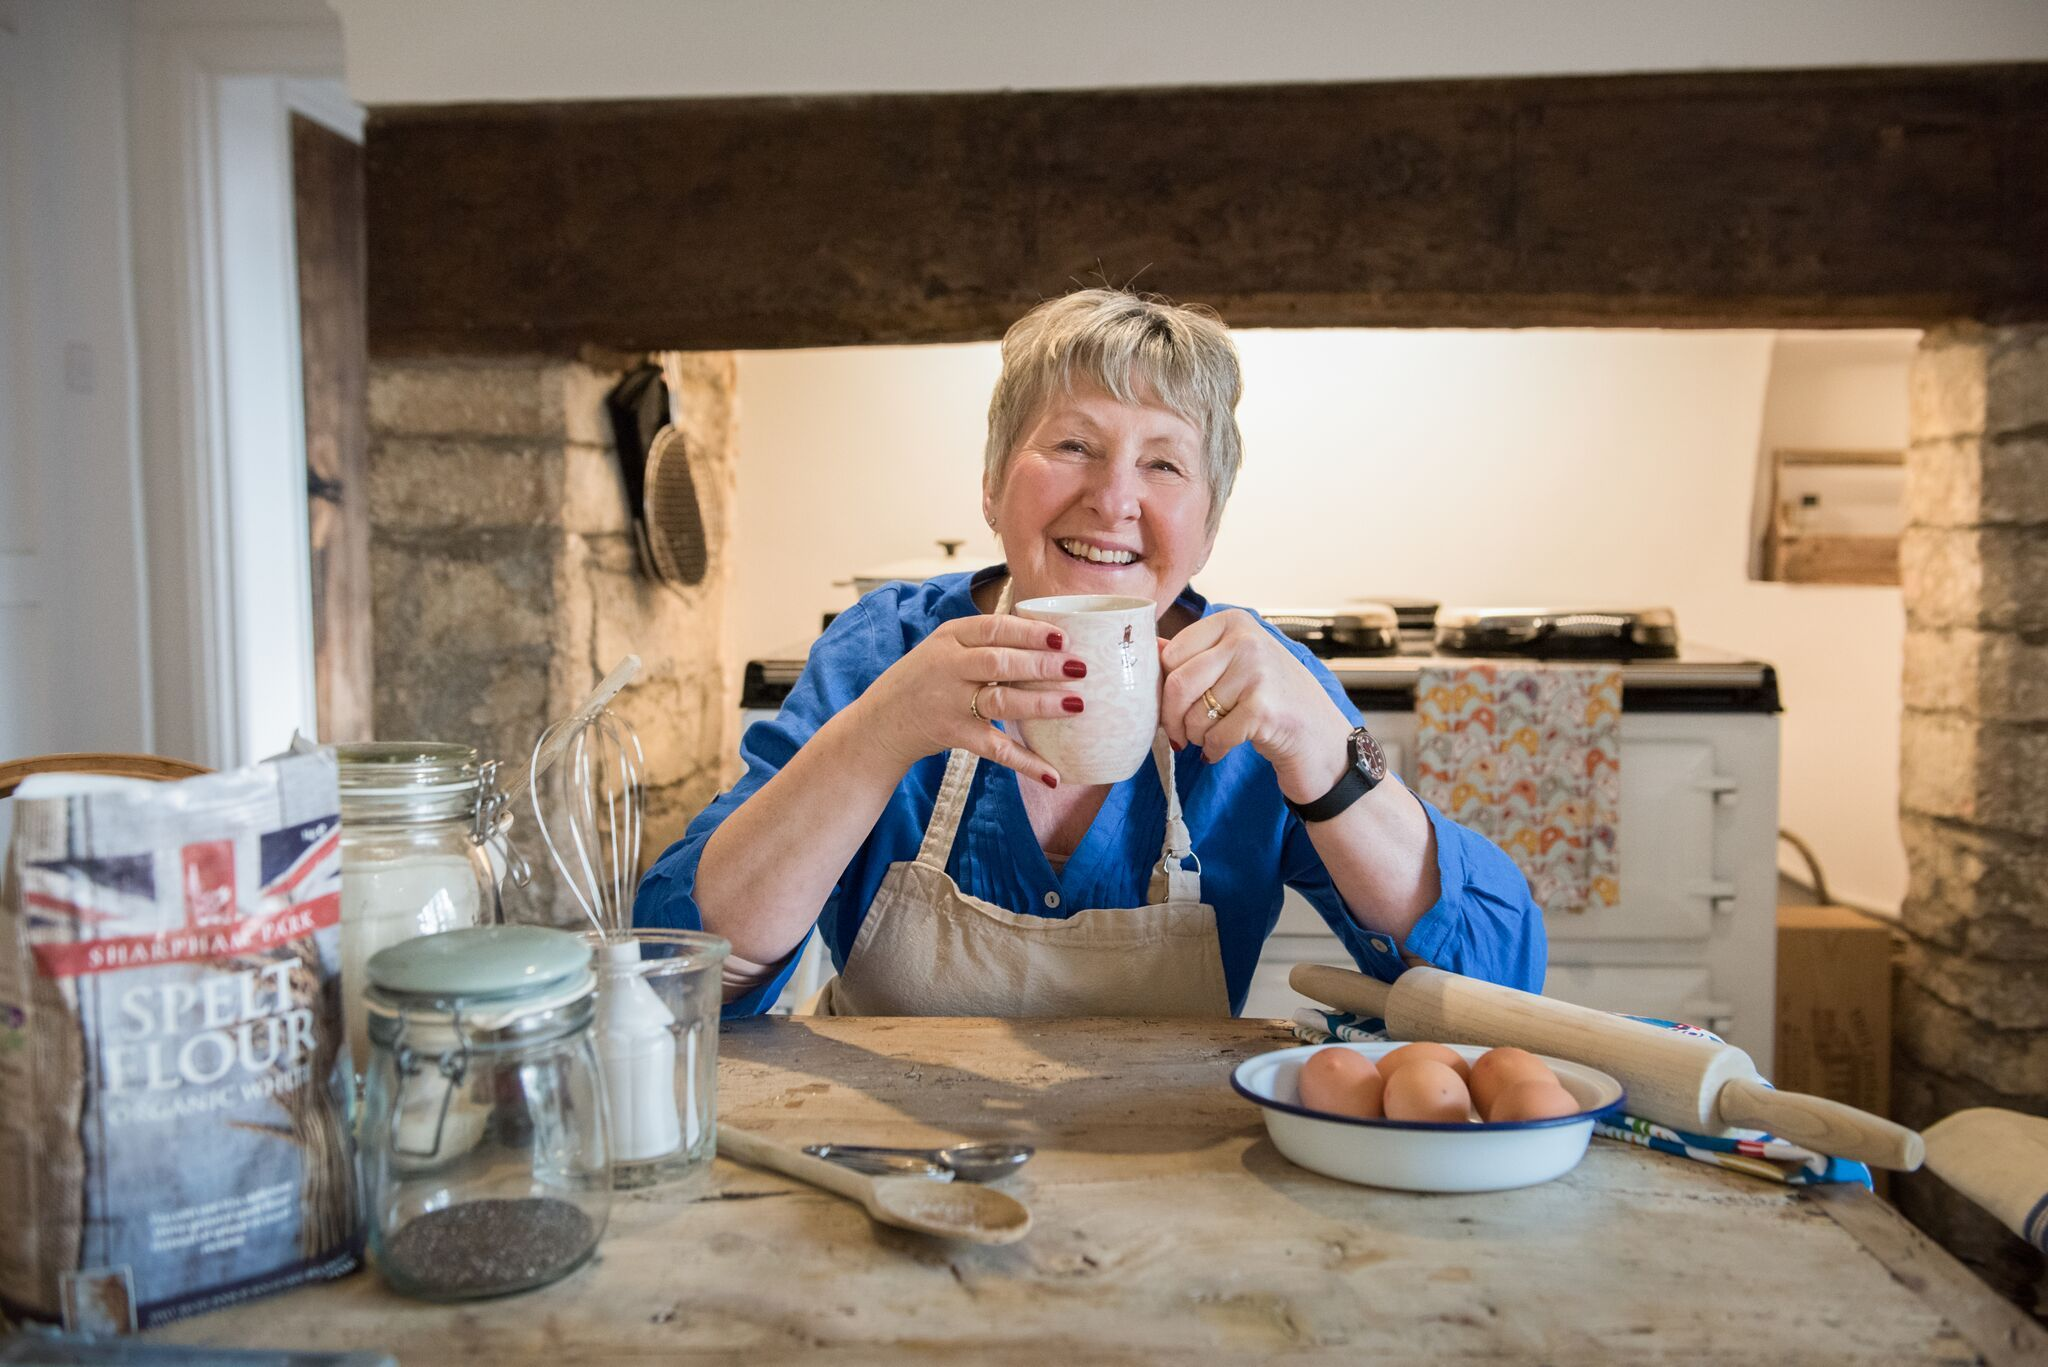 Former Great British Bake-off contestant, Val Stones, will be at Yeovil Show